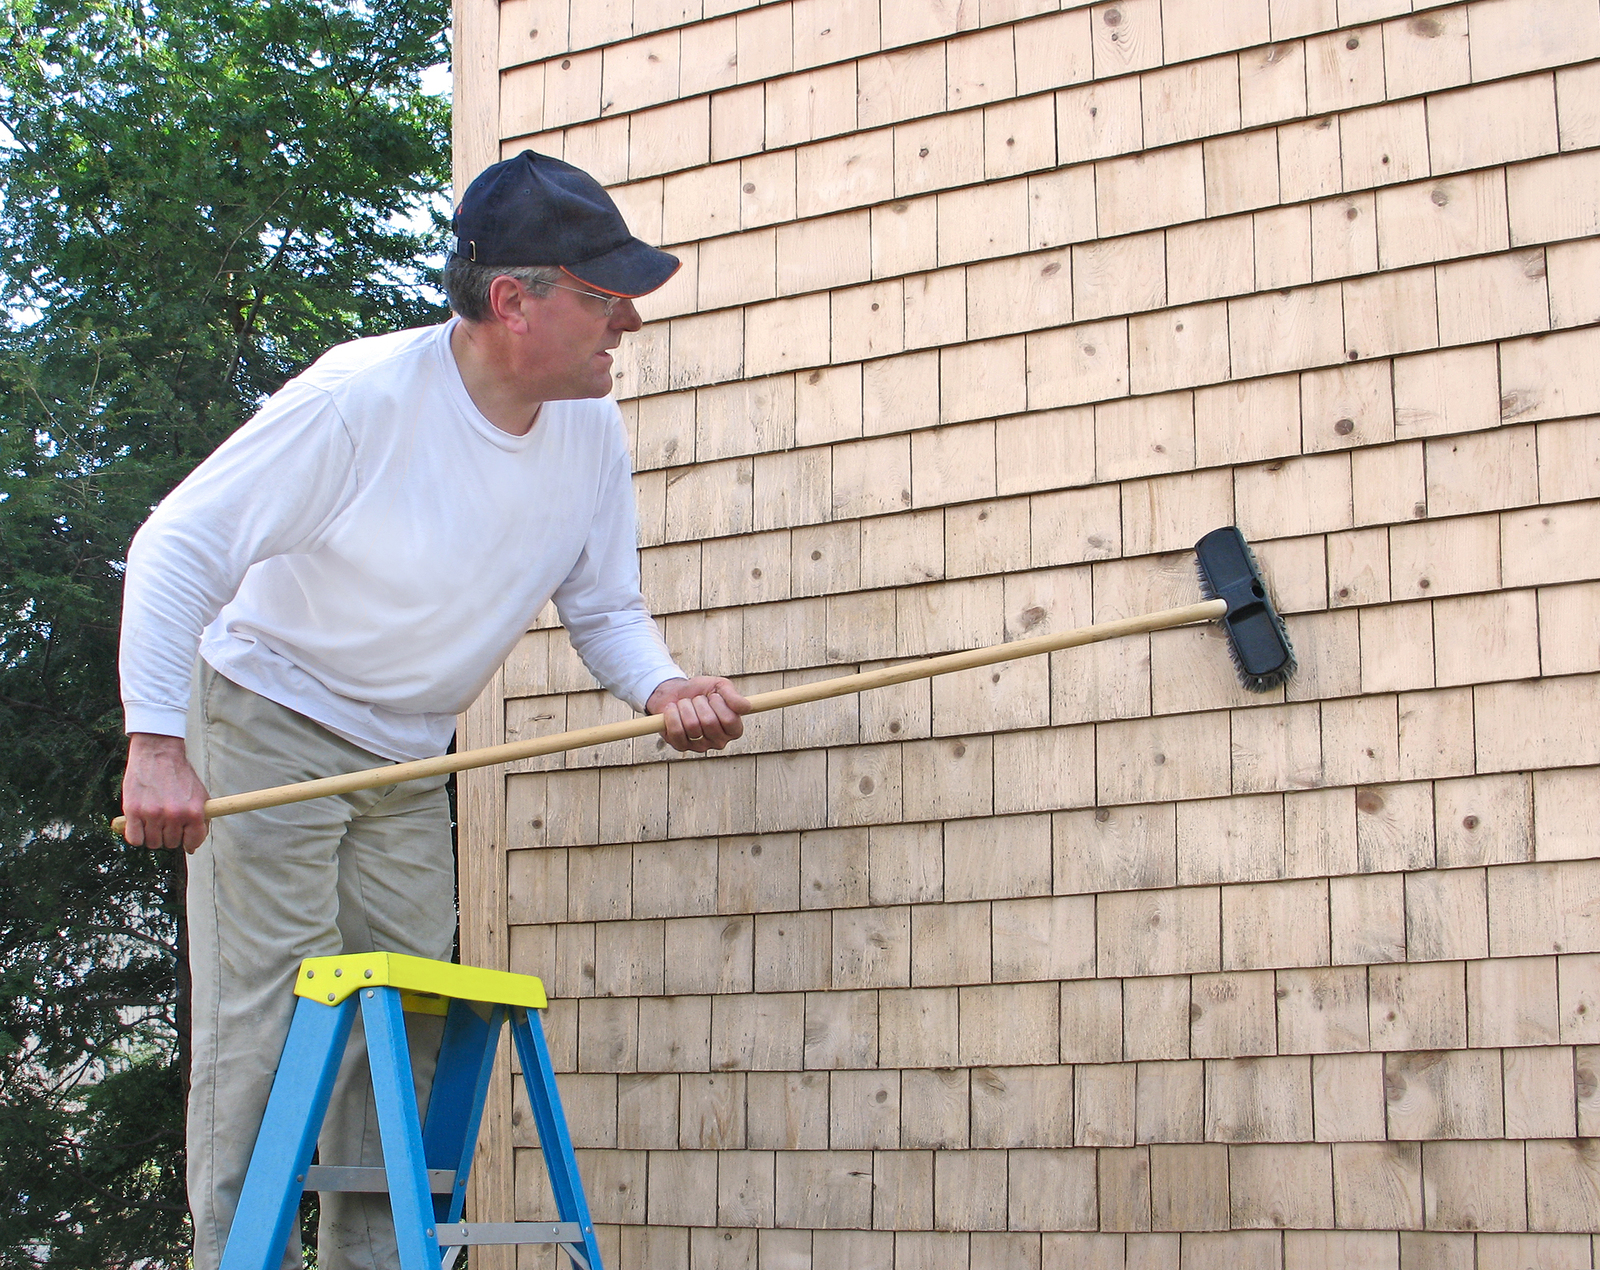 bigstock-Man-cleaning-cedar-shingles-30407279.jpg